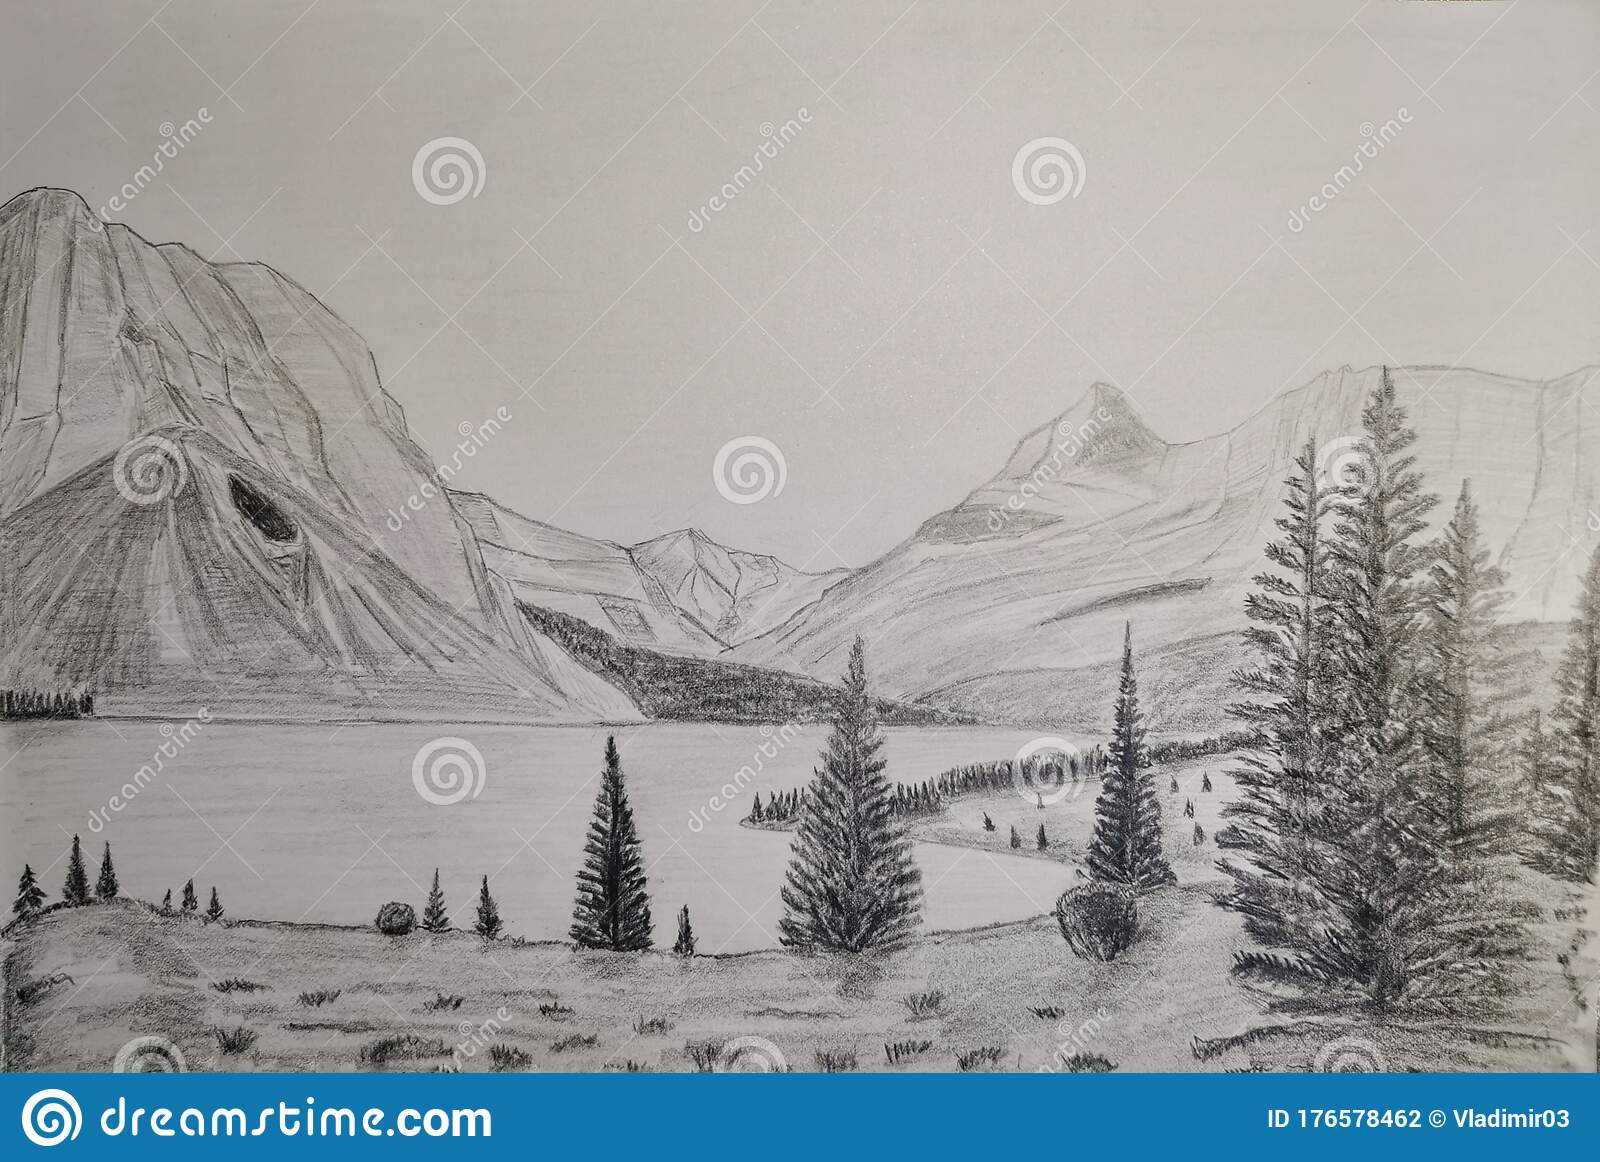 1 502 Landscape Pencil Drawing Photos Free Royalty Free Stock Photos From Dreamstime